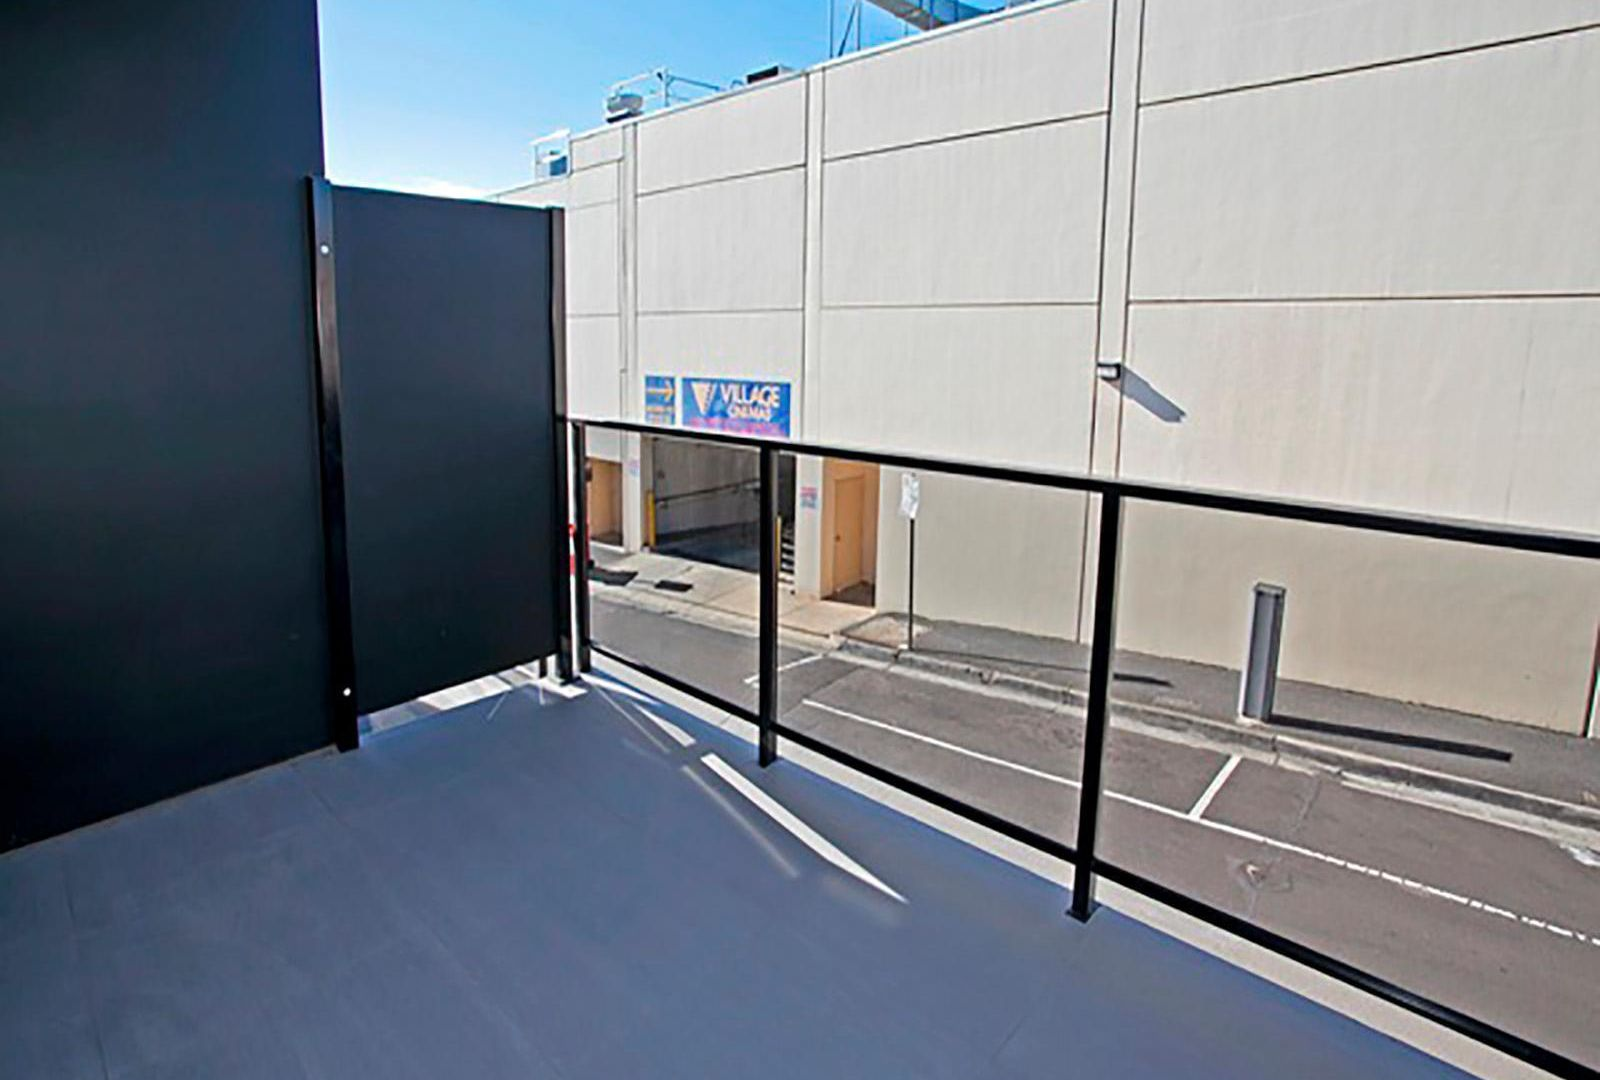 1/55 Little Ryrie Street, Geelong VIC 3220, Image 2